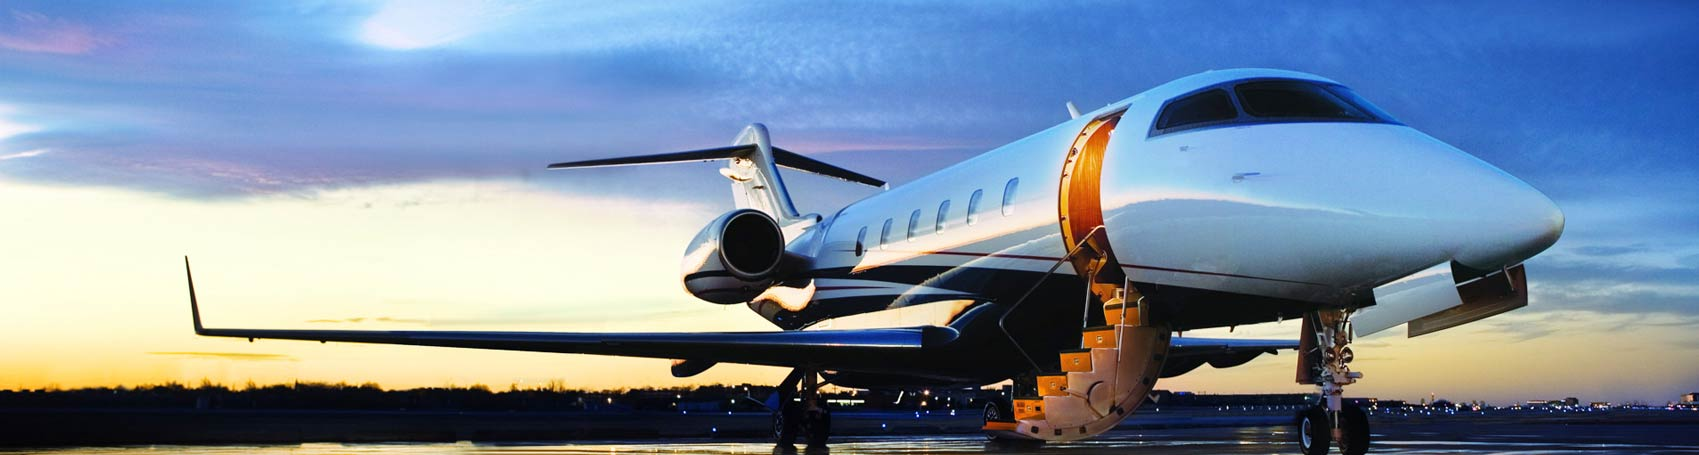 Rental of luxury private jets in Ibiza